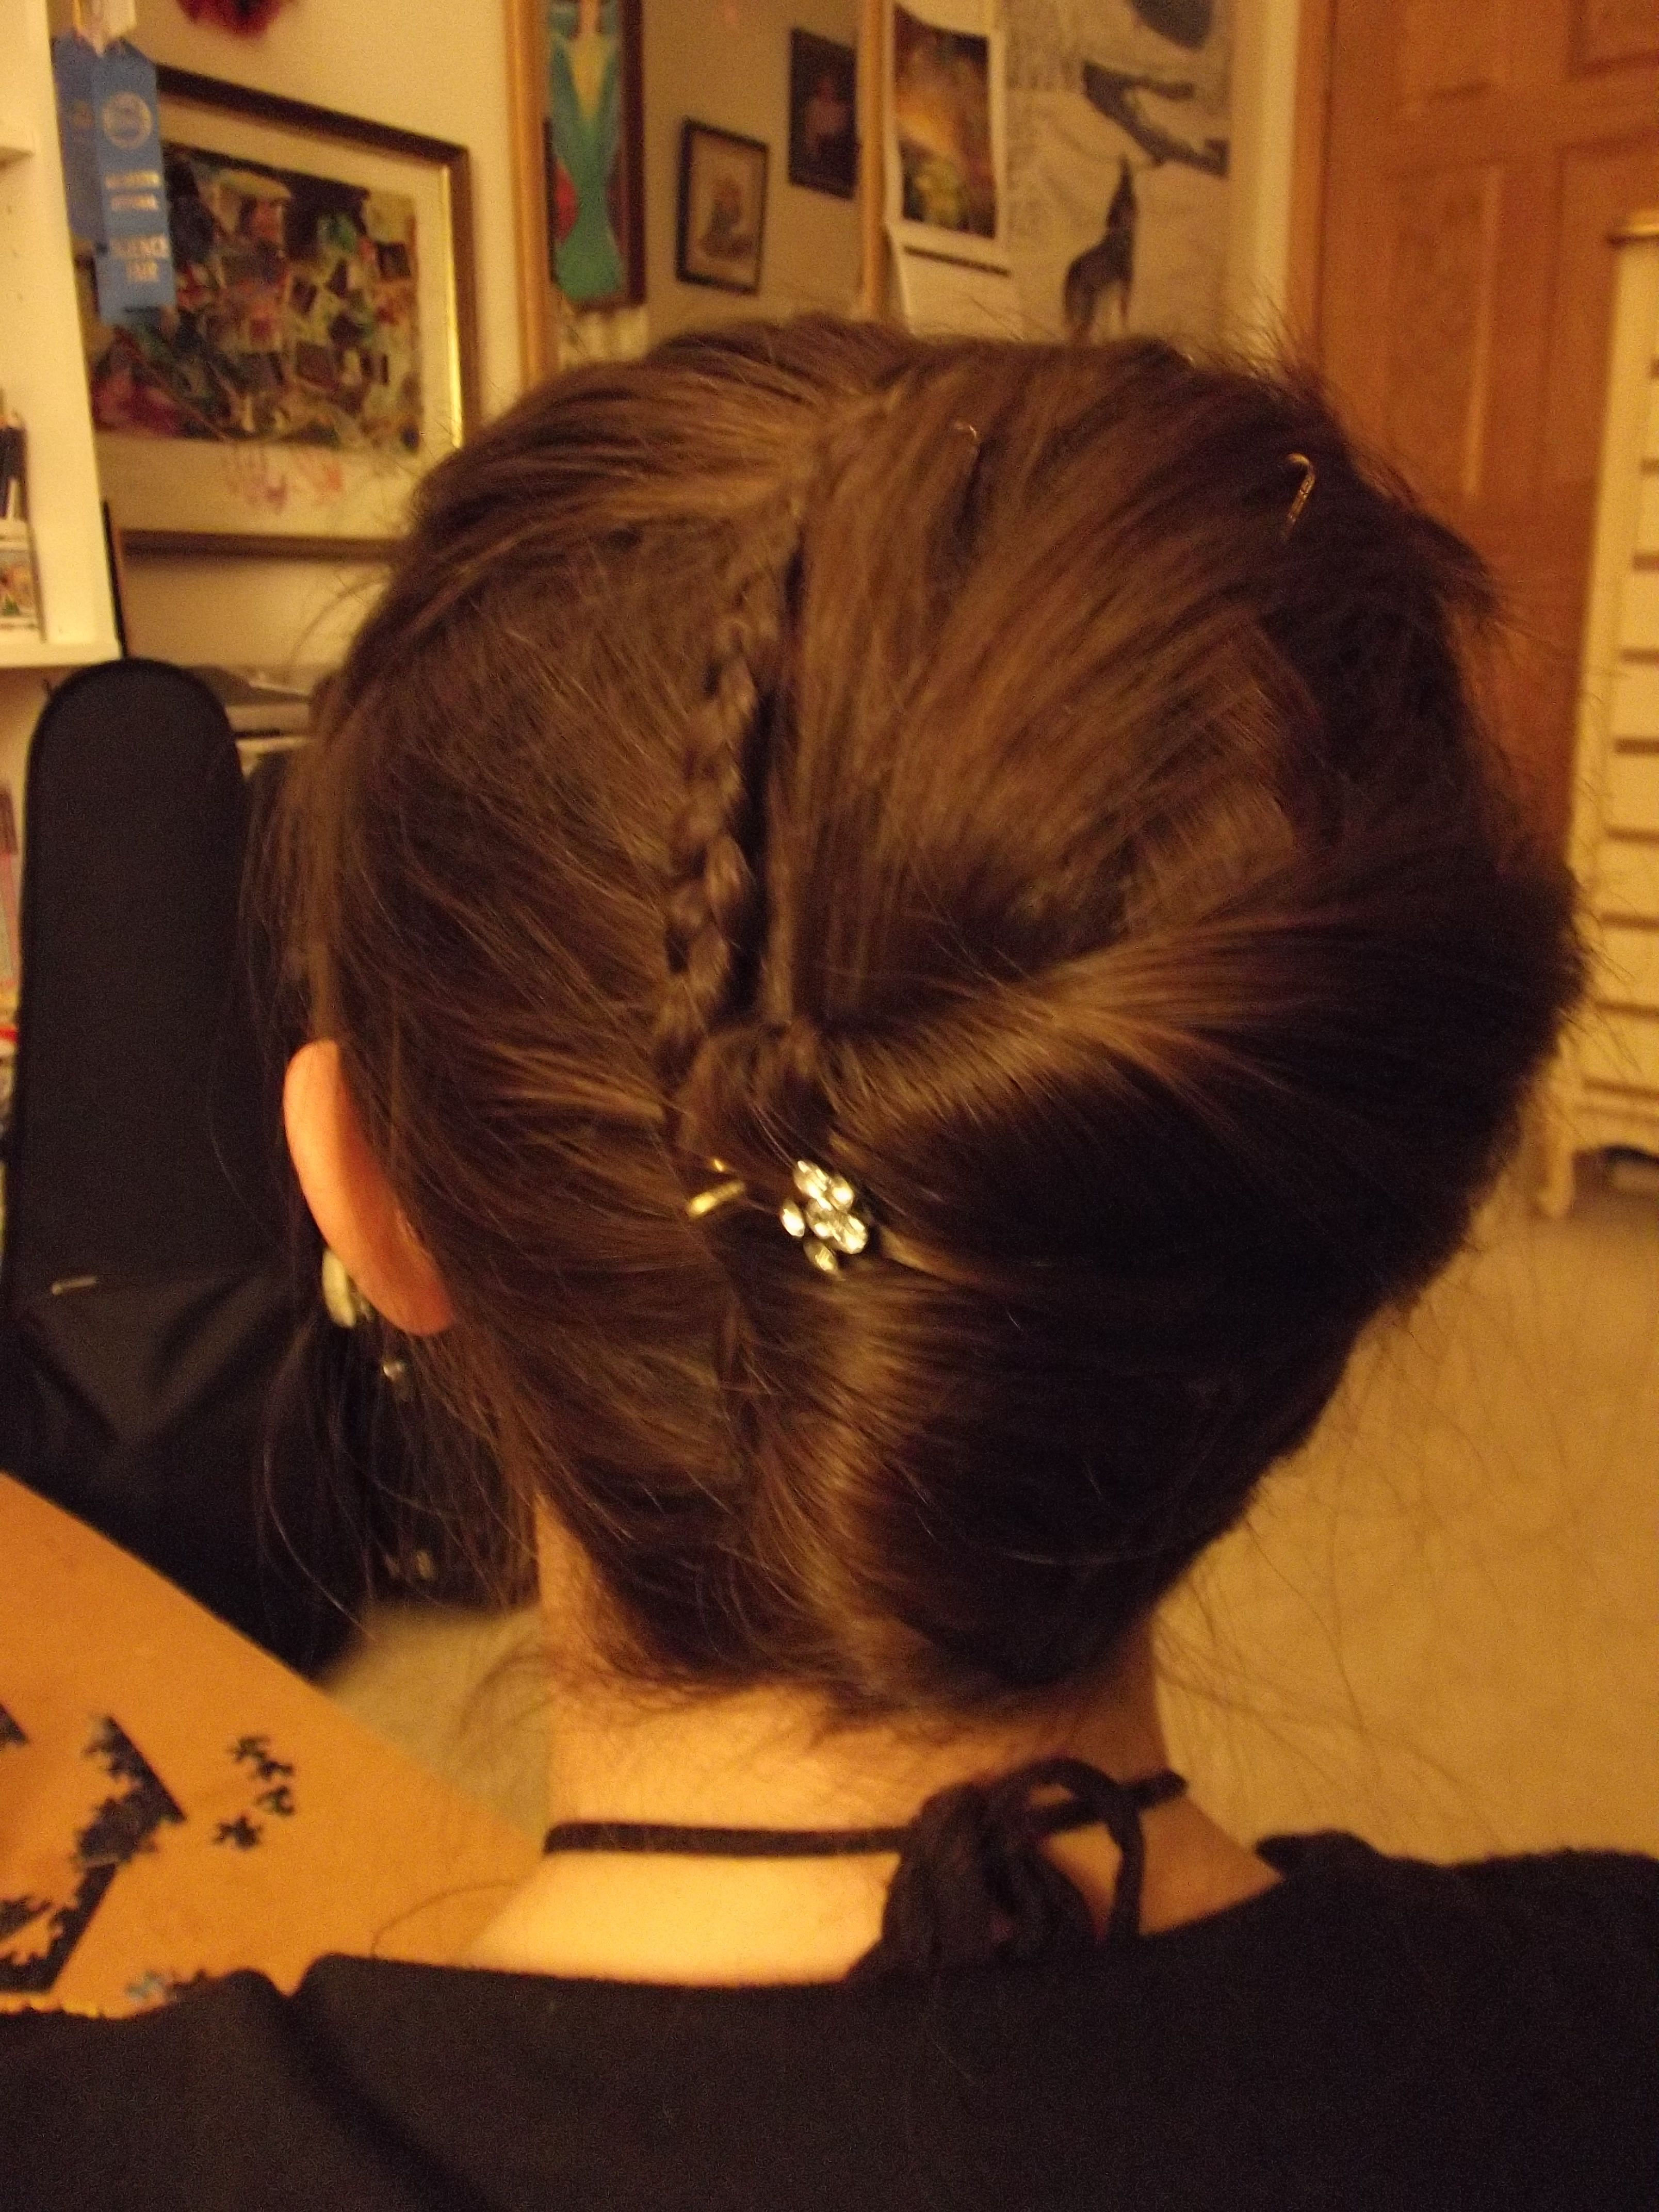 Cool hairstyle, done by DRD